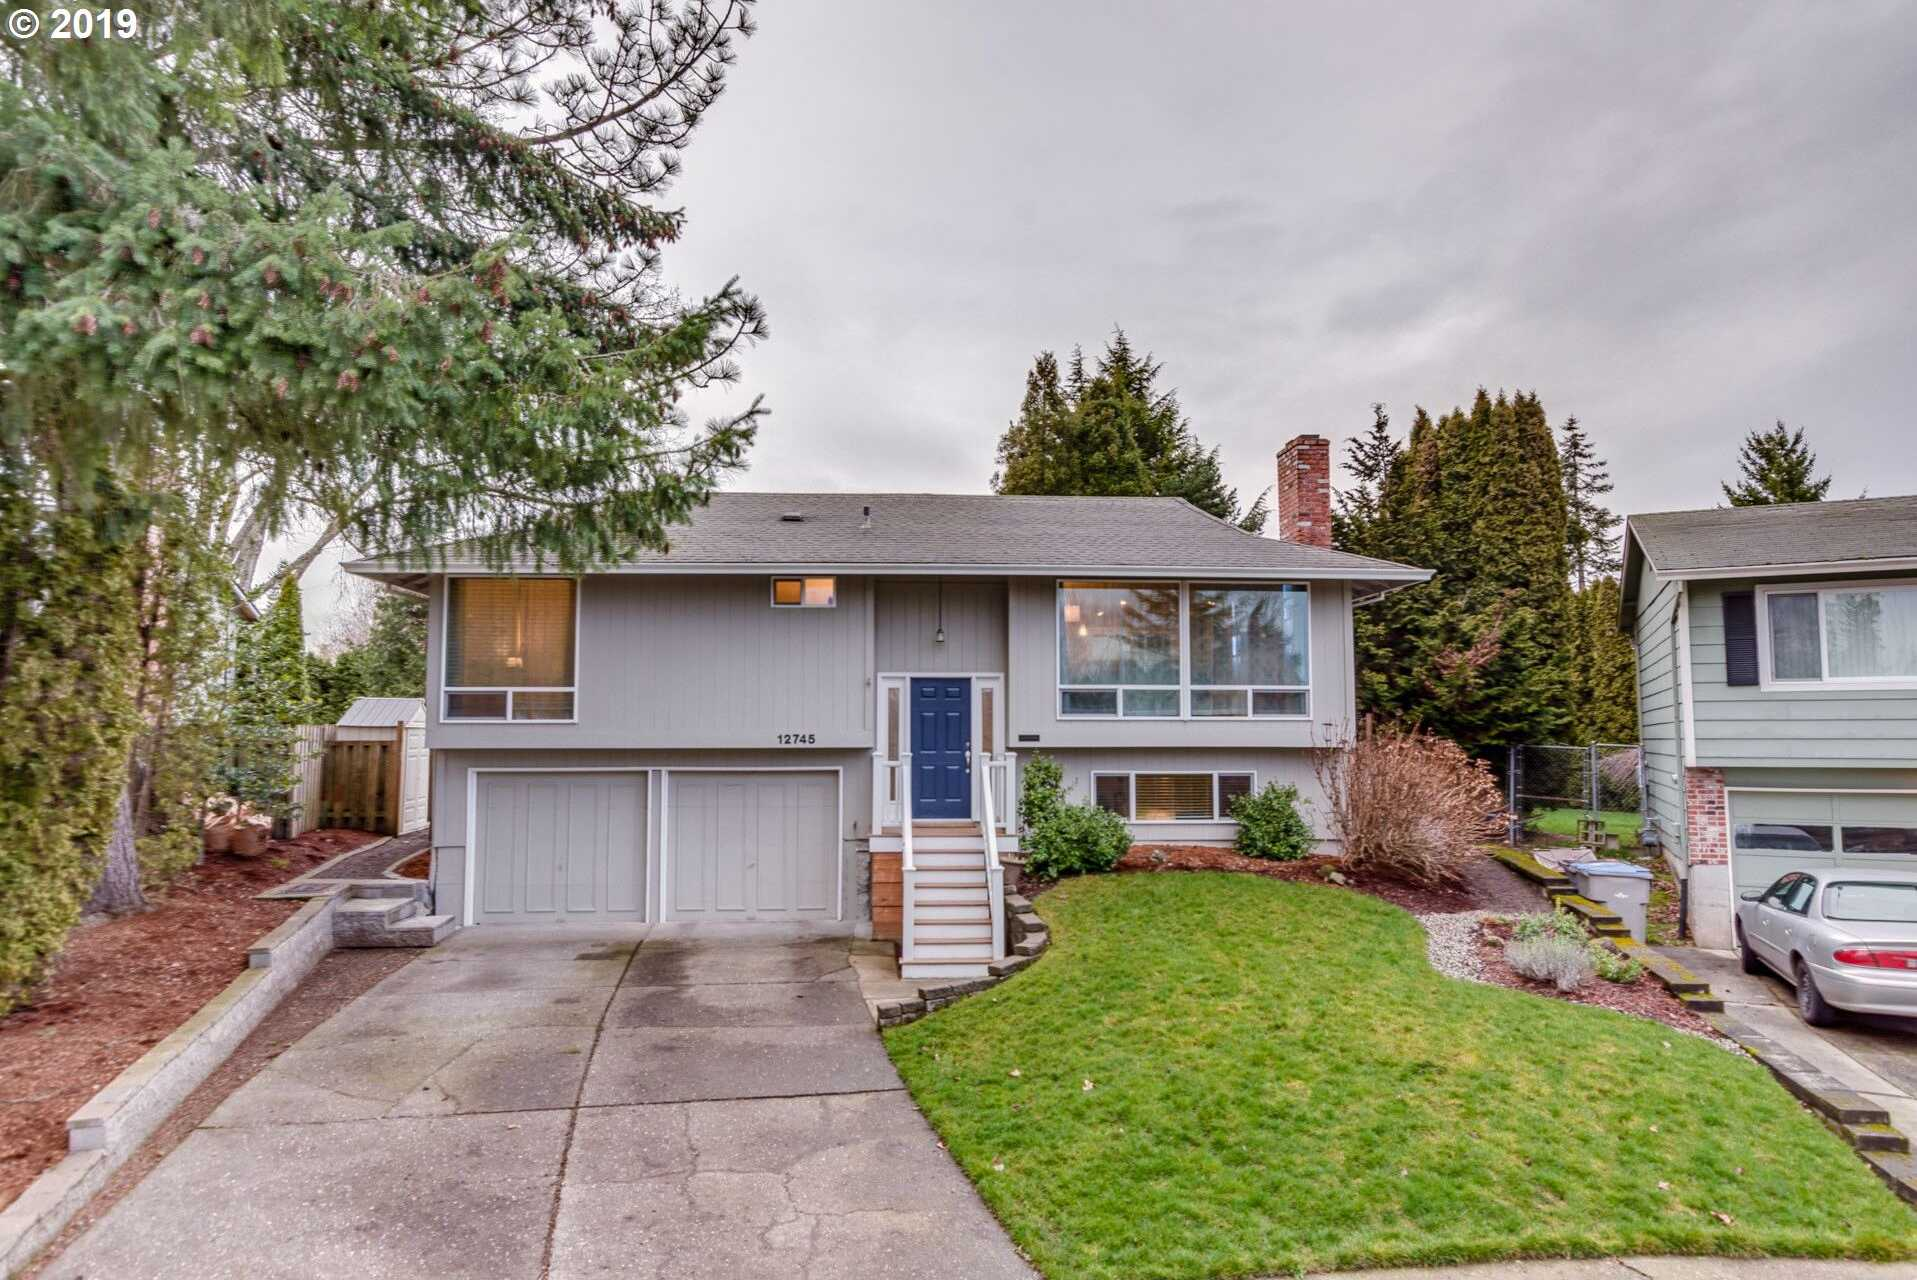 $435,000 - 4Br/2Ba -  for Sale in Tigard